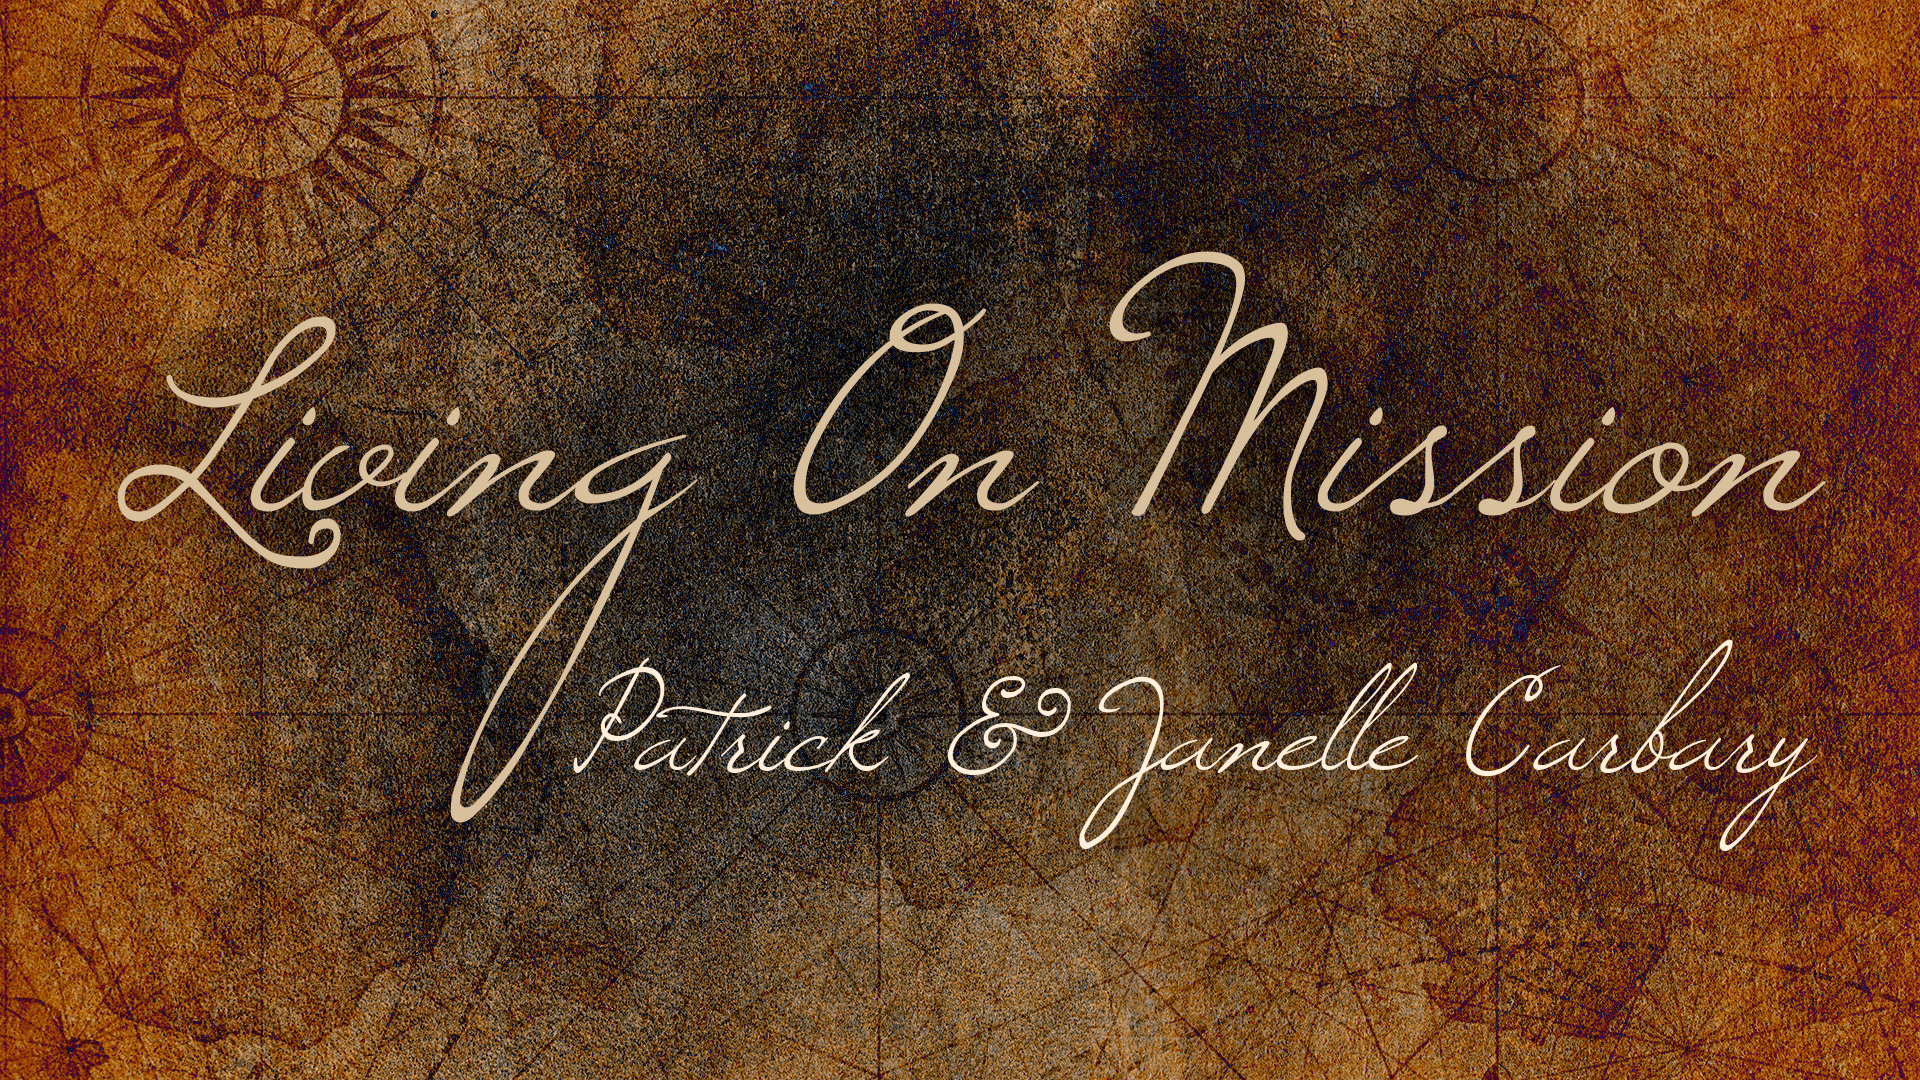 Living On Mission - Patrick & Janelle Carbary